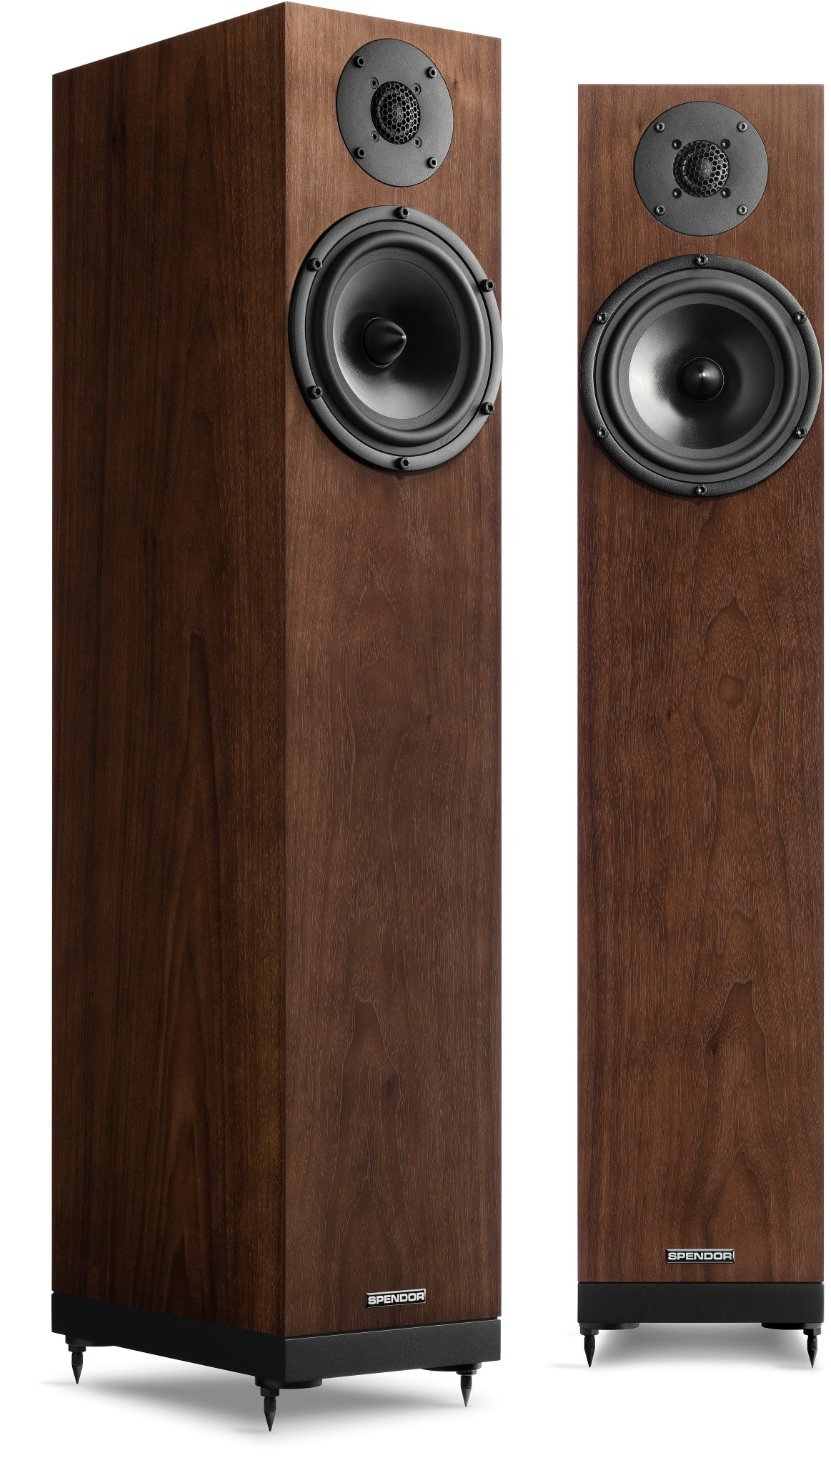 Spendor A7 in Dark Walnut Finish